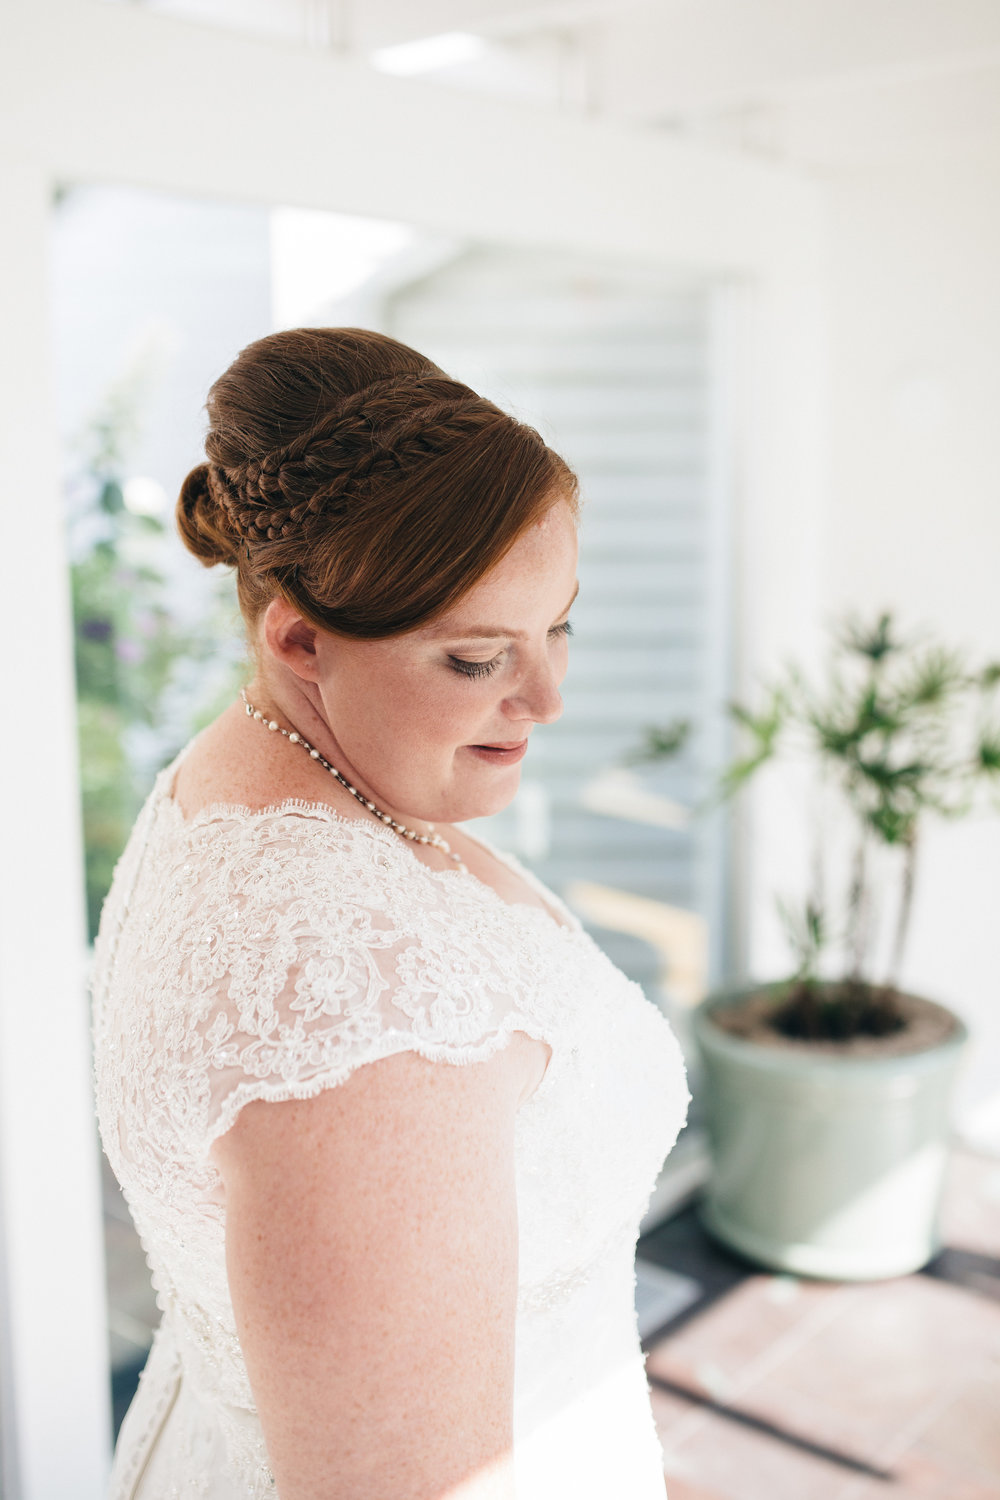 Bridal portrait in lace dress at Walden Inn & Spa Wedding.